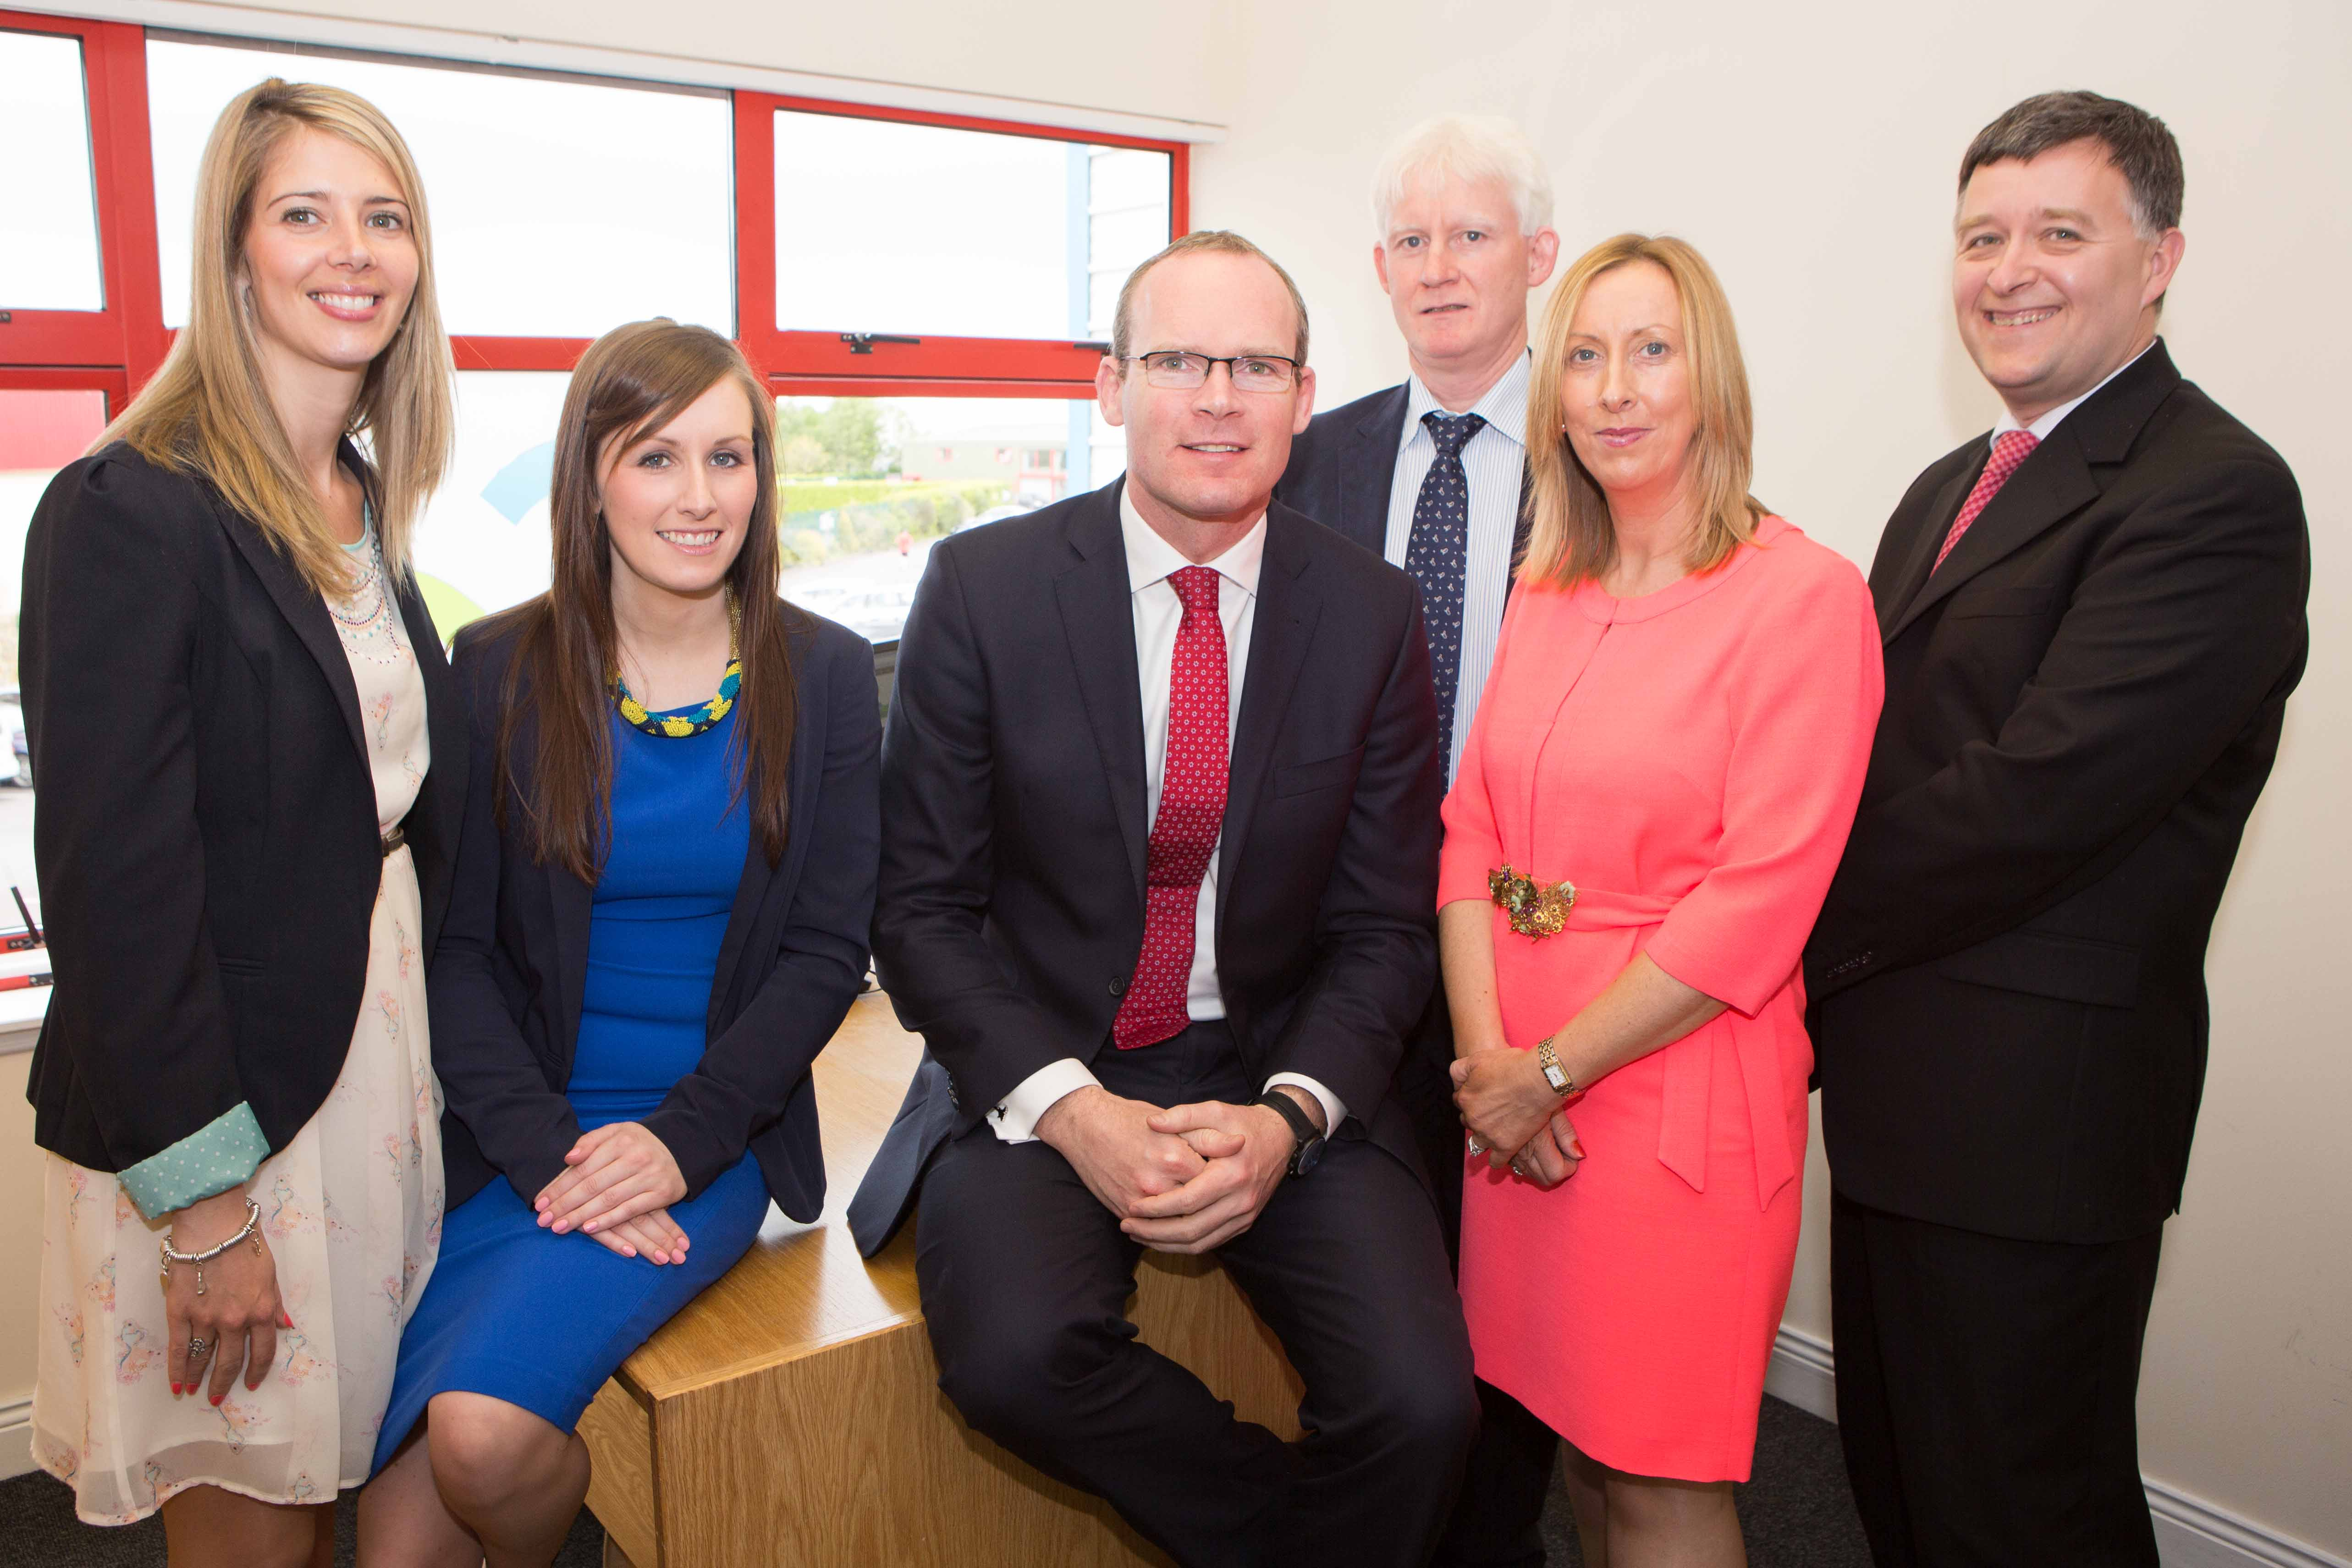 Staff Photo with Minister Simon Coveney